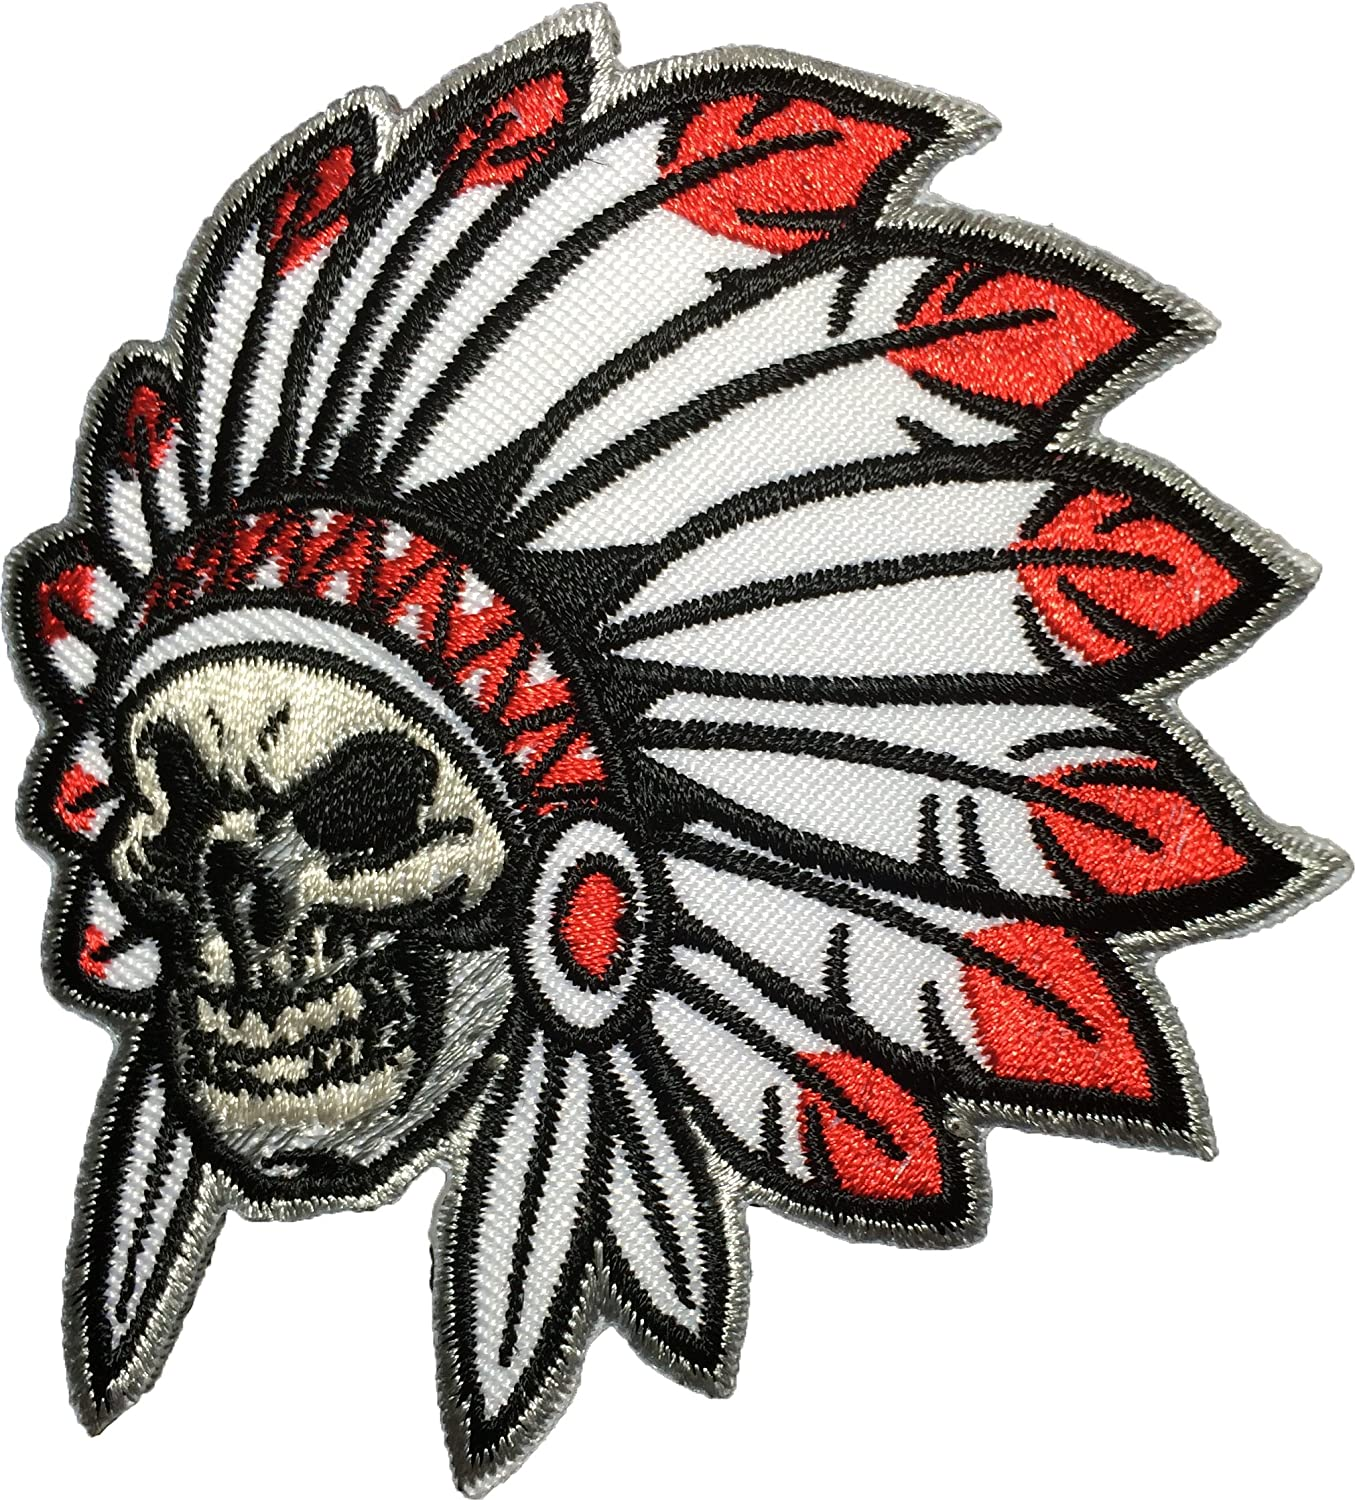 Native American Indian Chief Head Embroidered Iron on Patch Free Postage